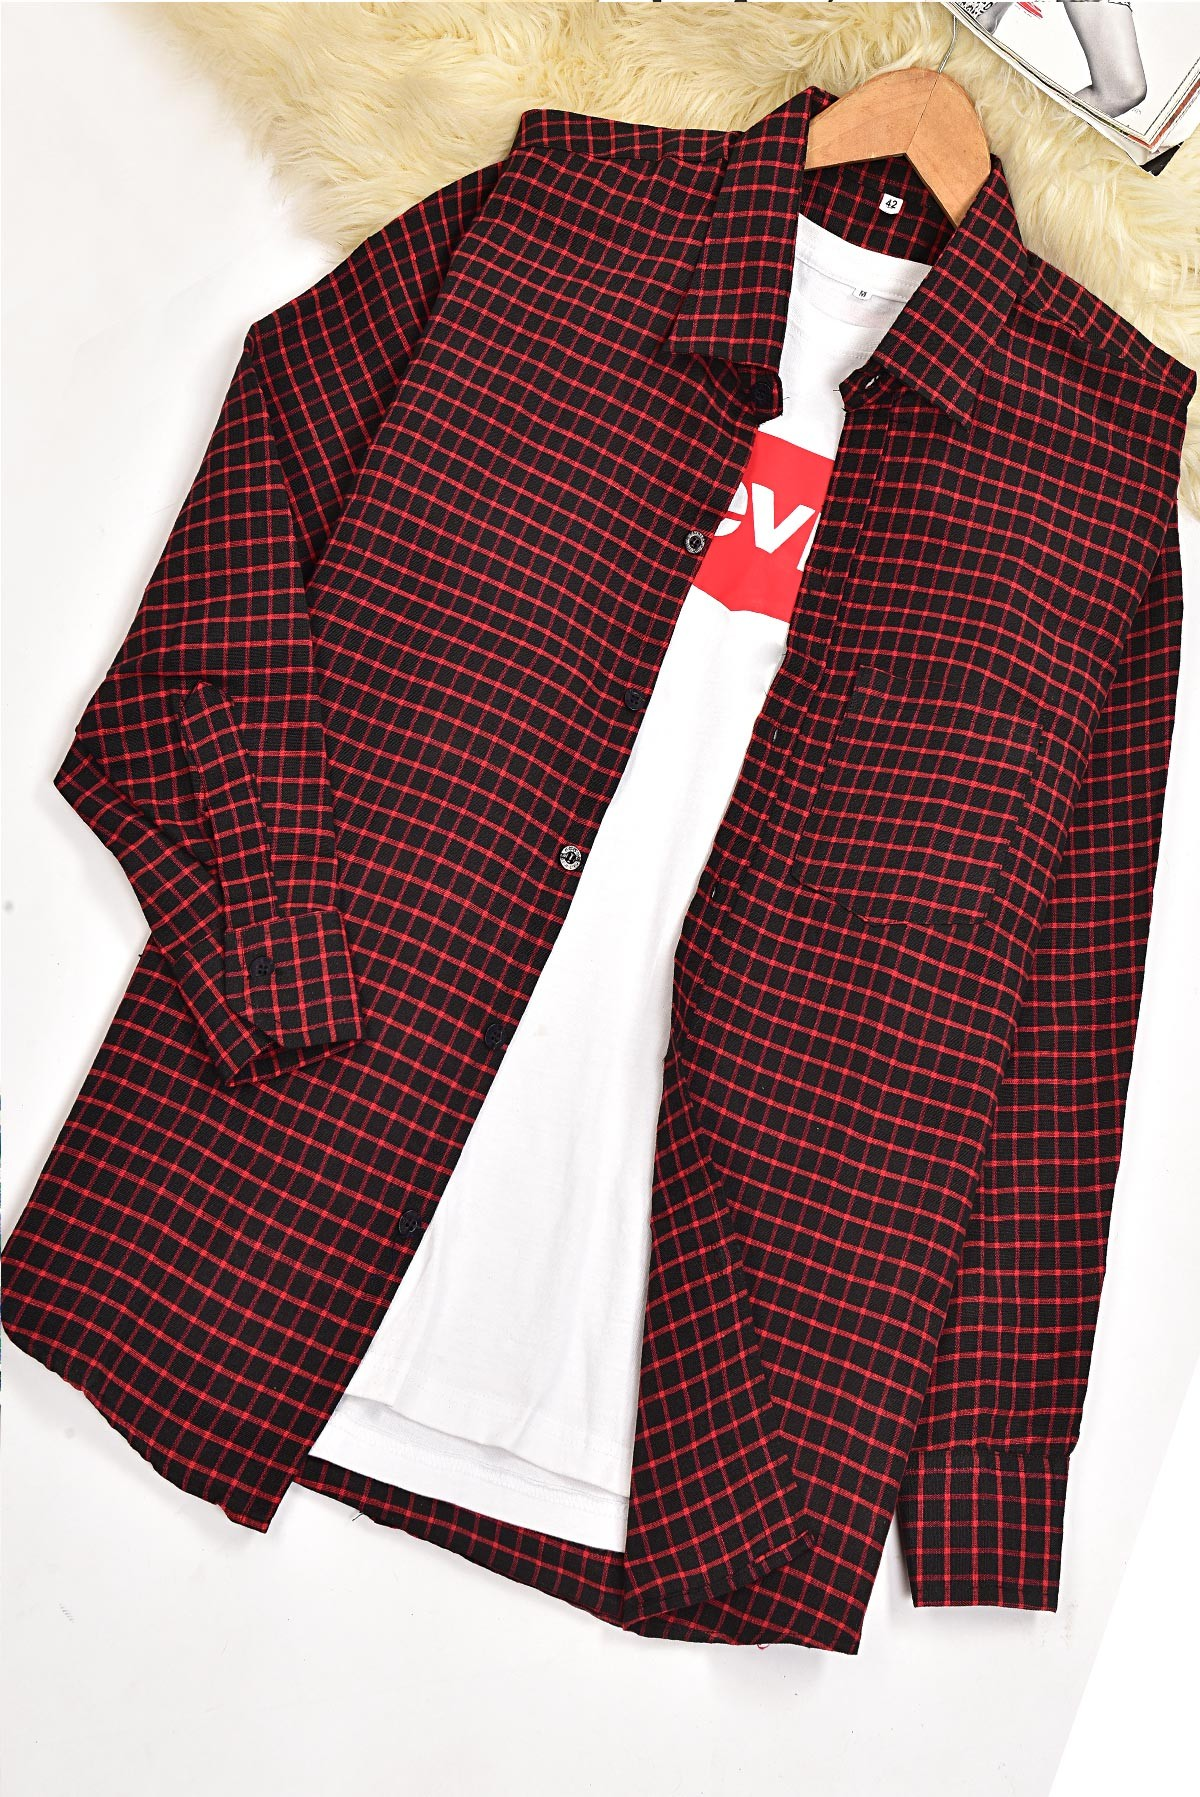 Men's Basic Full Sleeves Red and Black Check Shirt S158